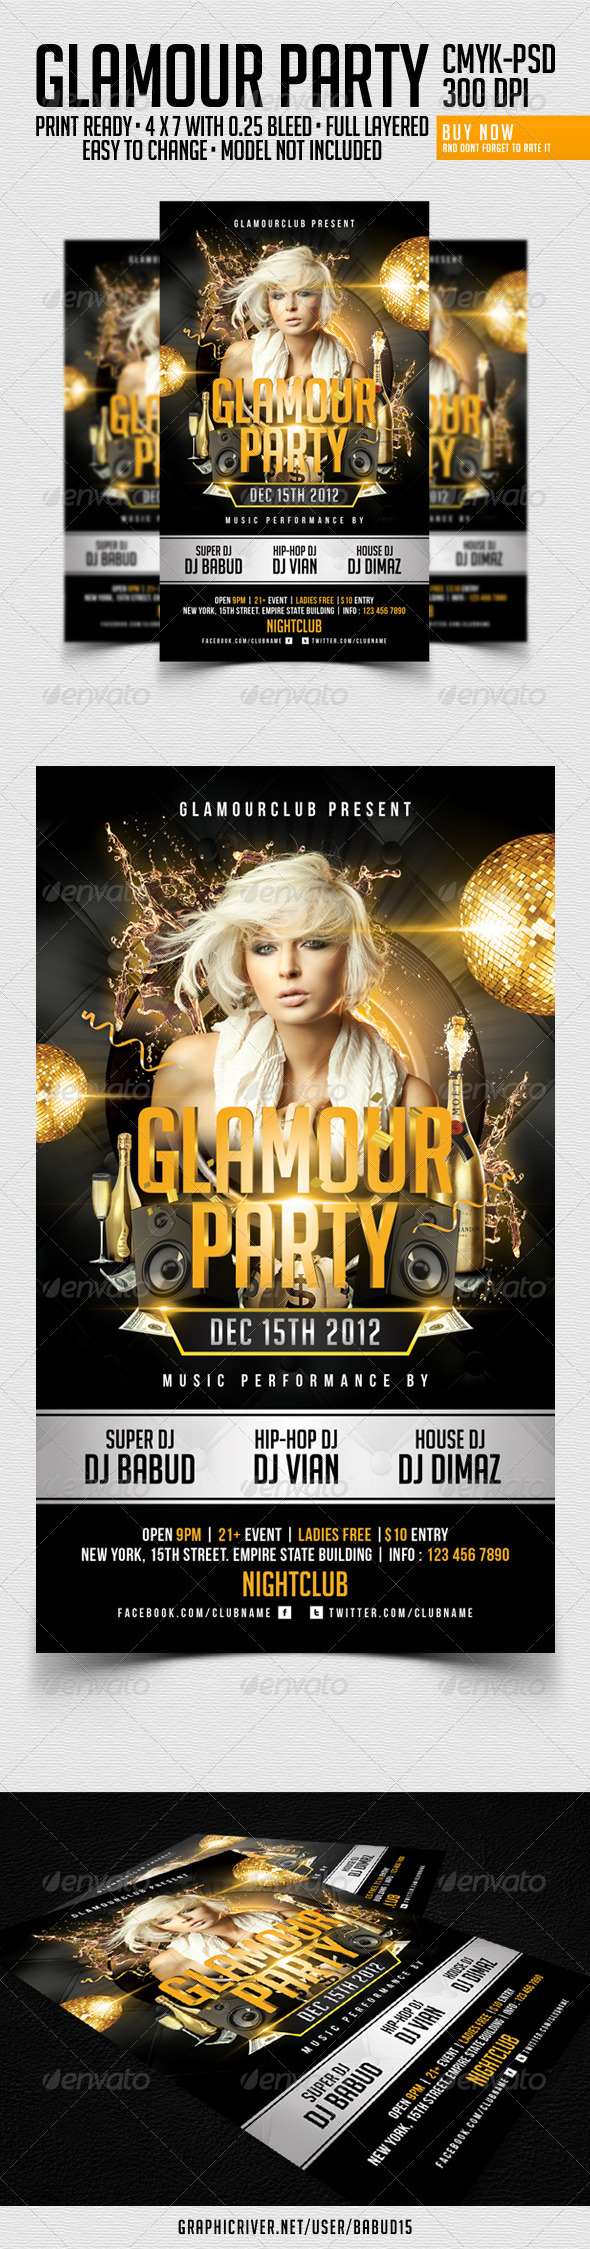 Glamour Party Flyer Template - Clubs & Parties Events